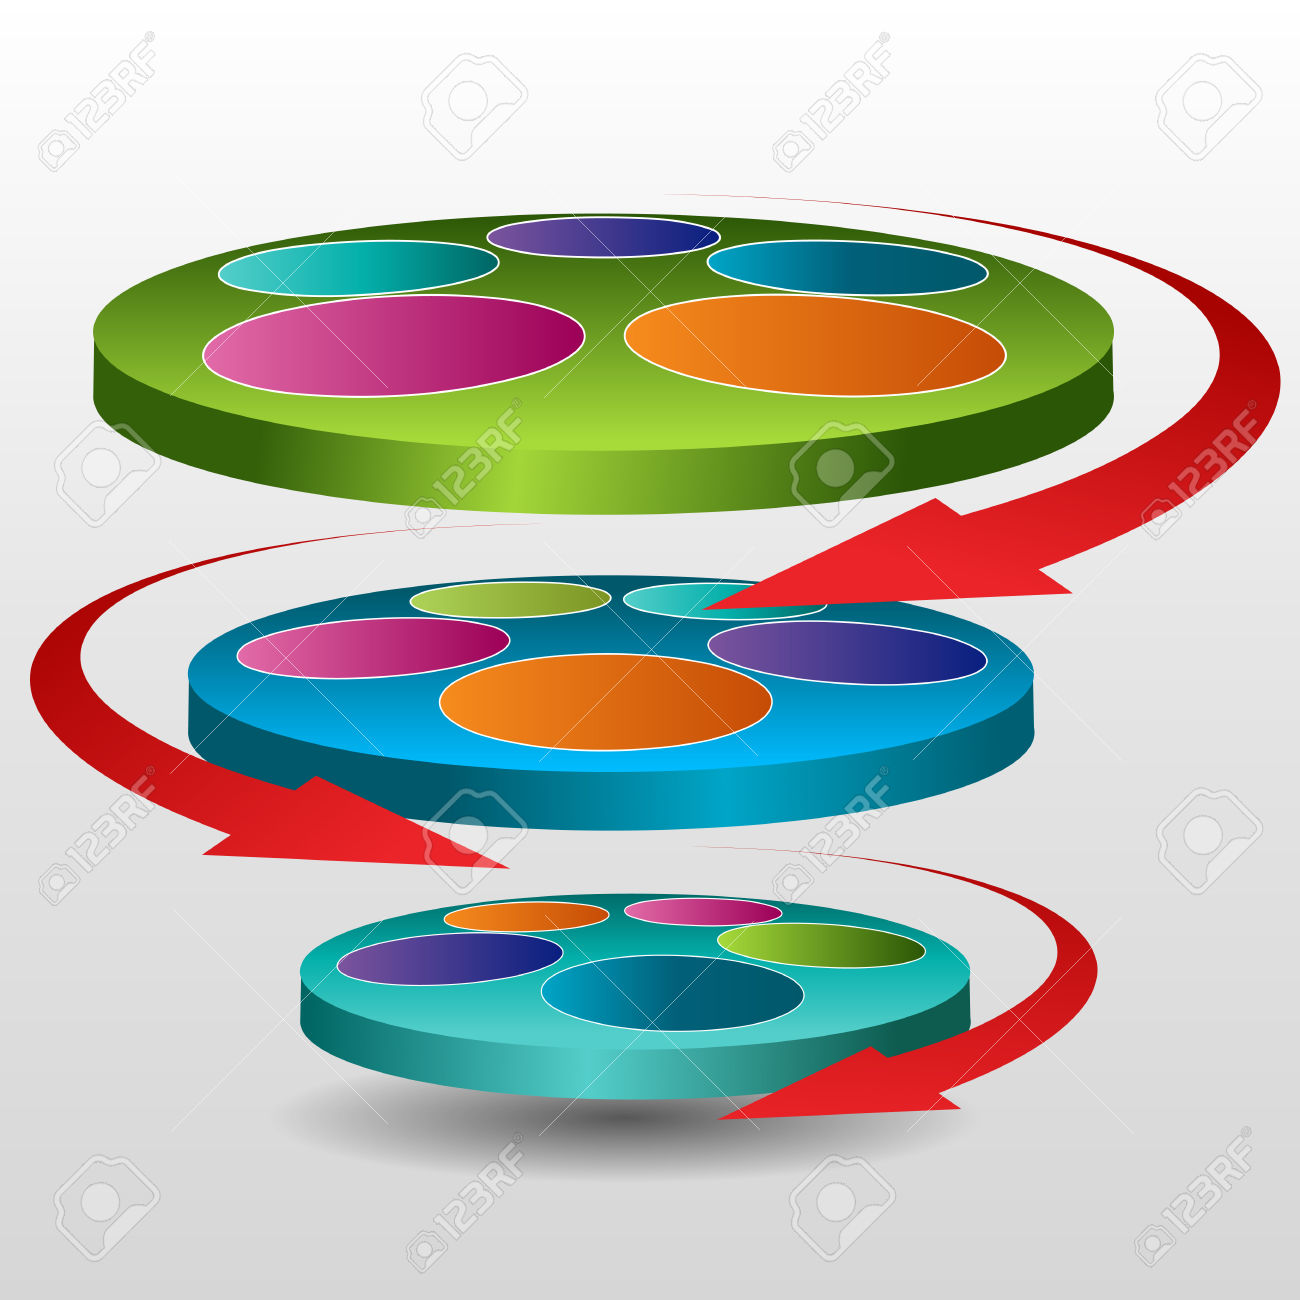 An Image Of A 3d Rotating Disc Chart Icon. Royalty Free Cliparts.